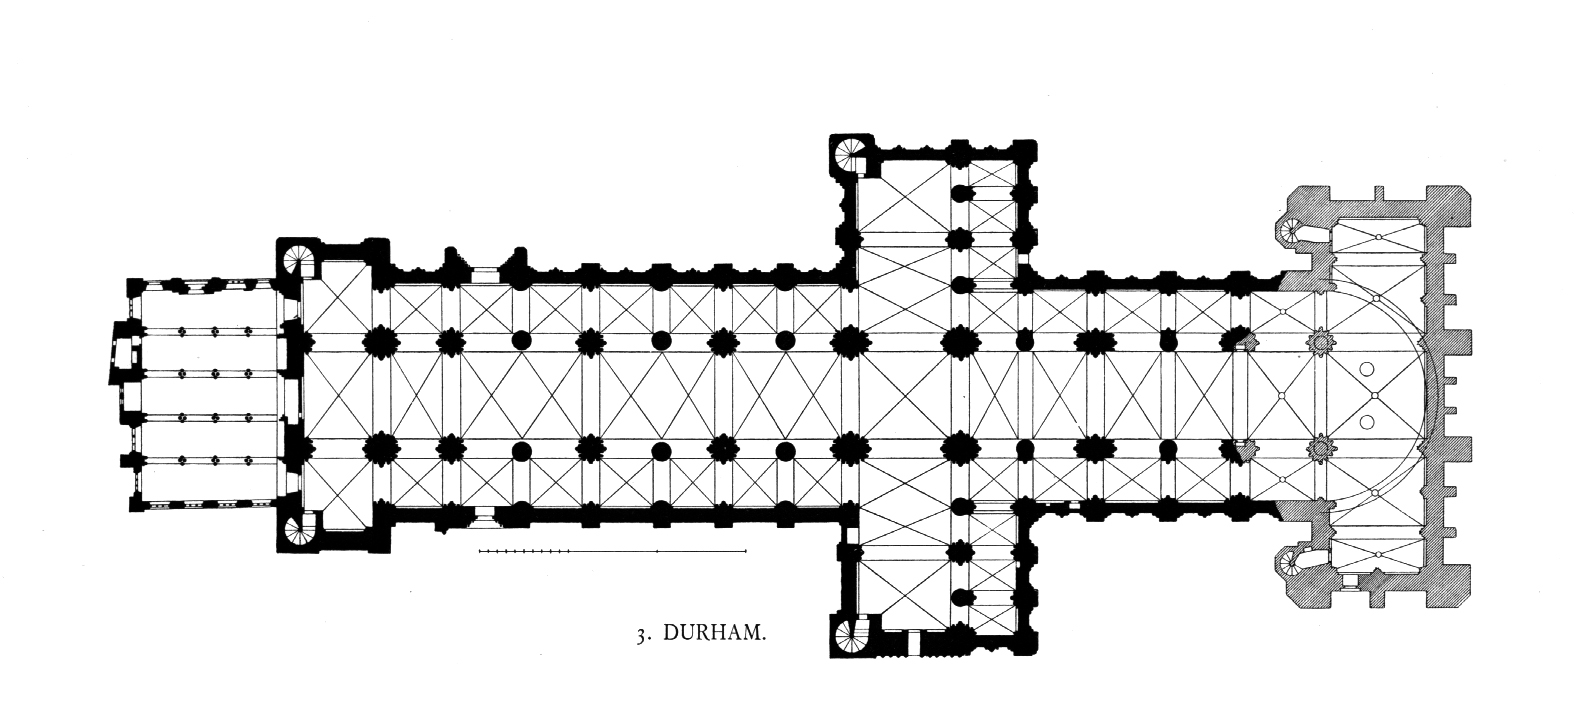 medieval durham cathedral plans and drawings pin romanesque cathedral floor plan eyesforyourimage on